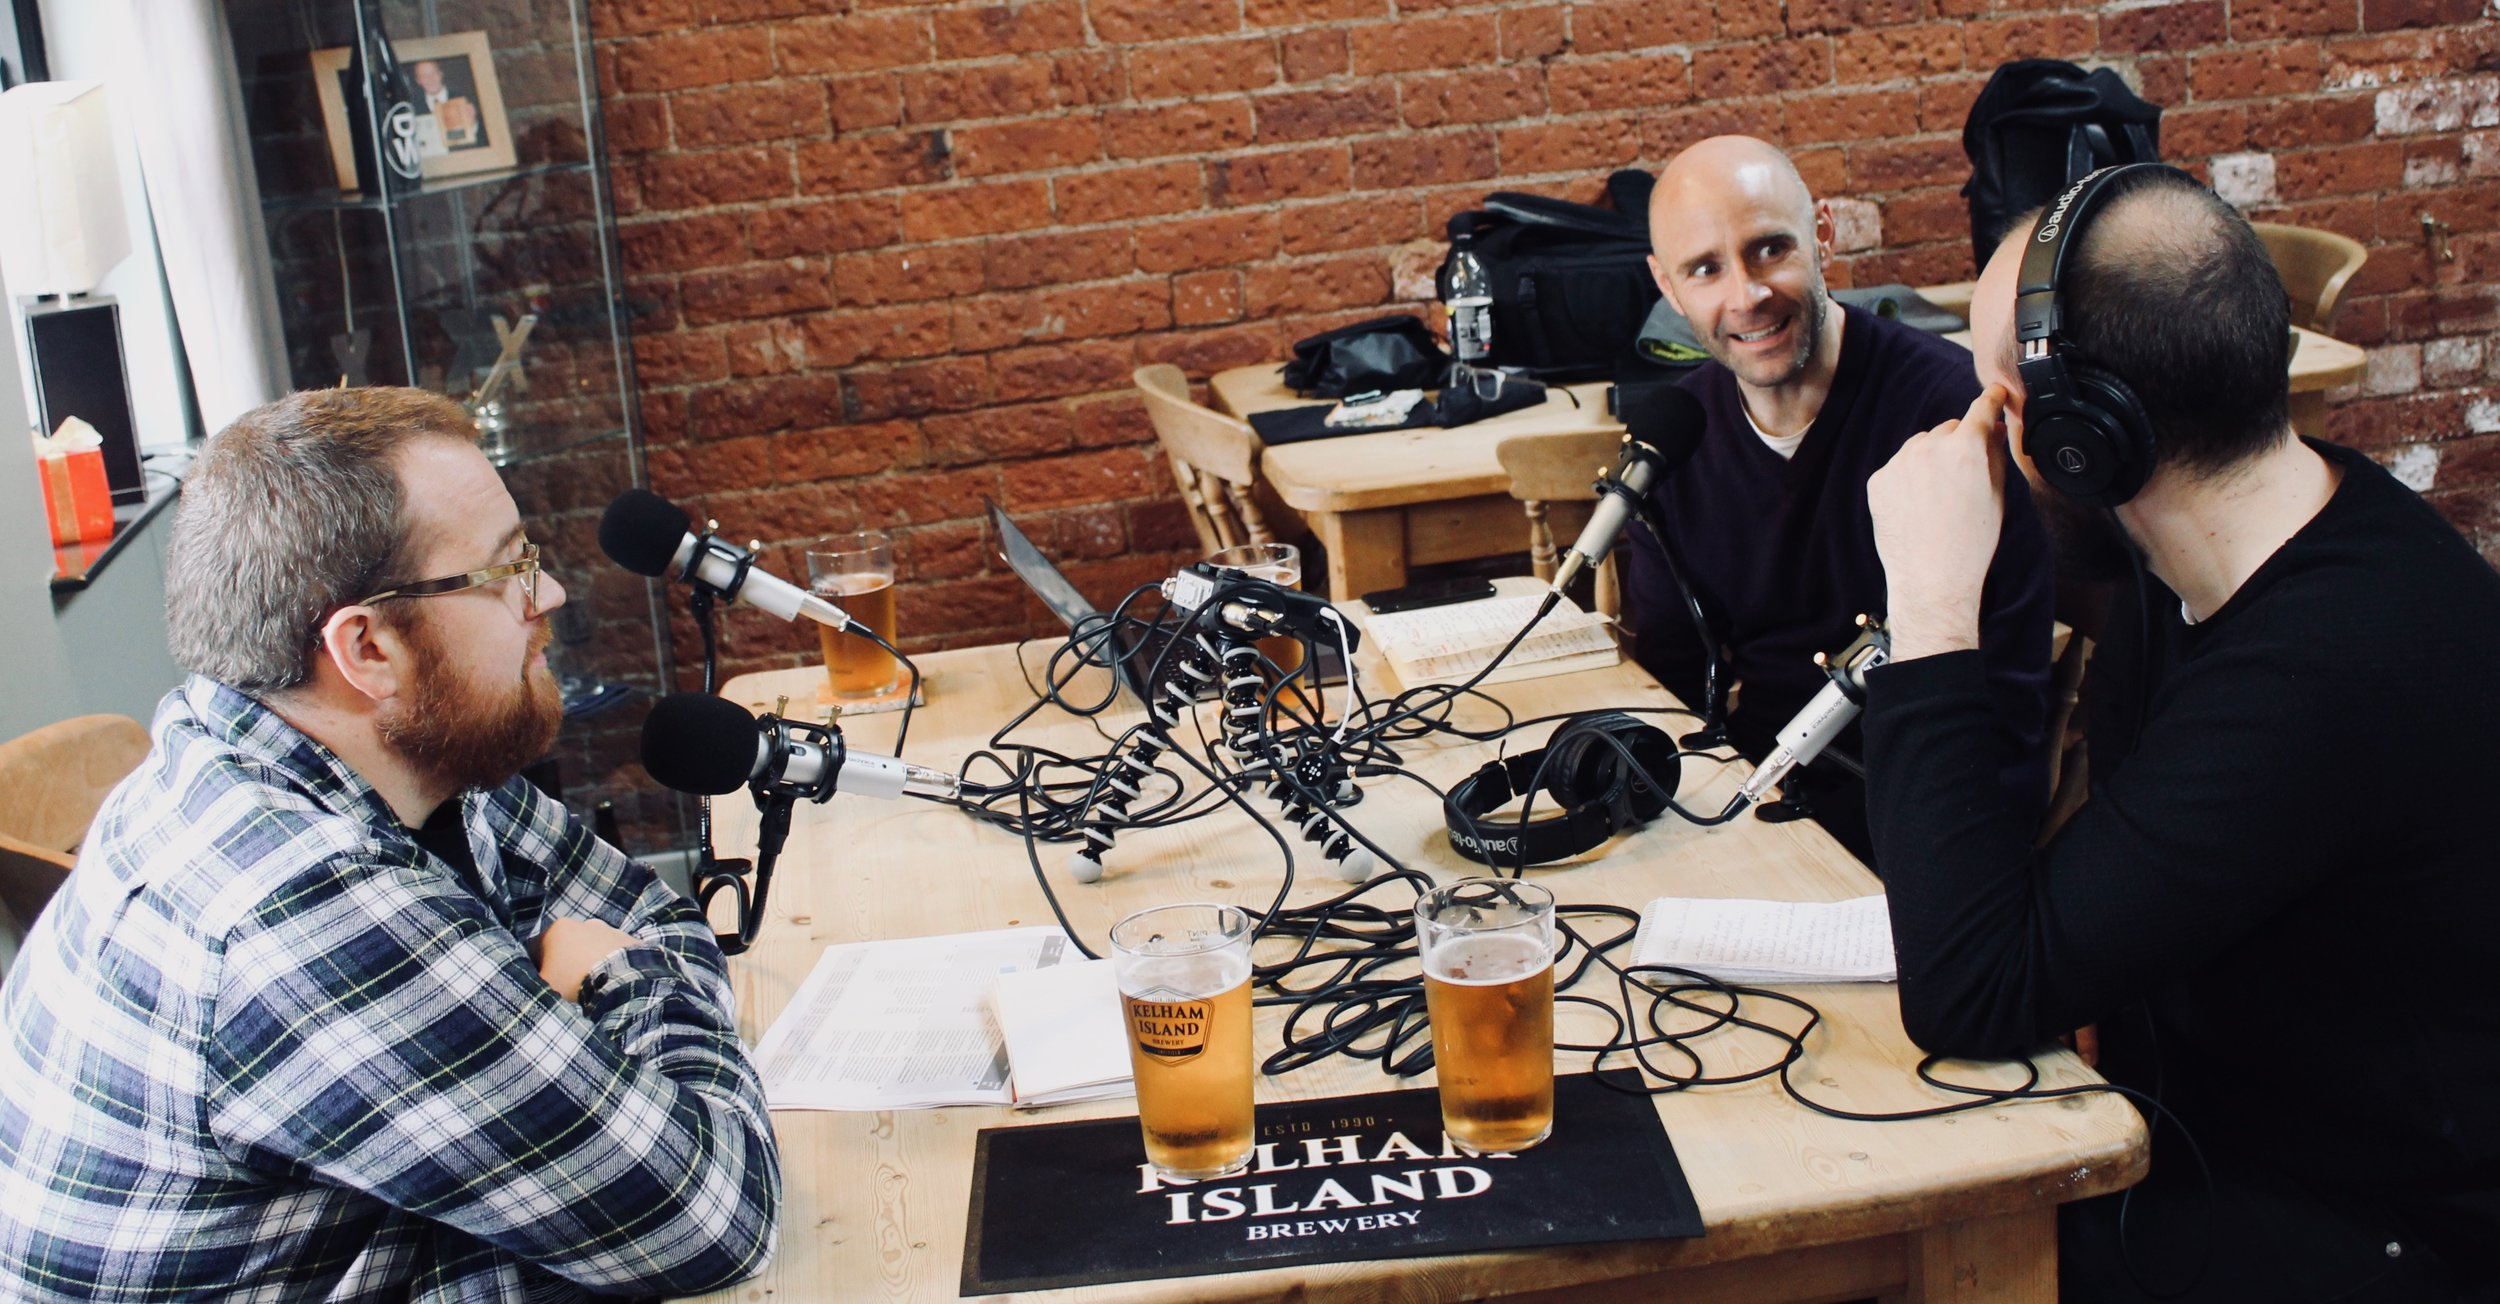 recording workplace matters  episodes 15 & 16 at kelham Island Brewery, Sheffield